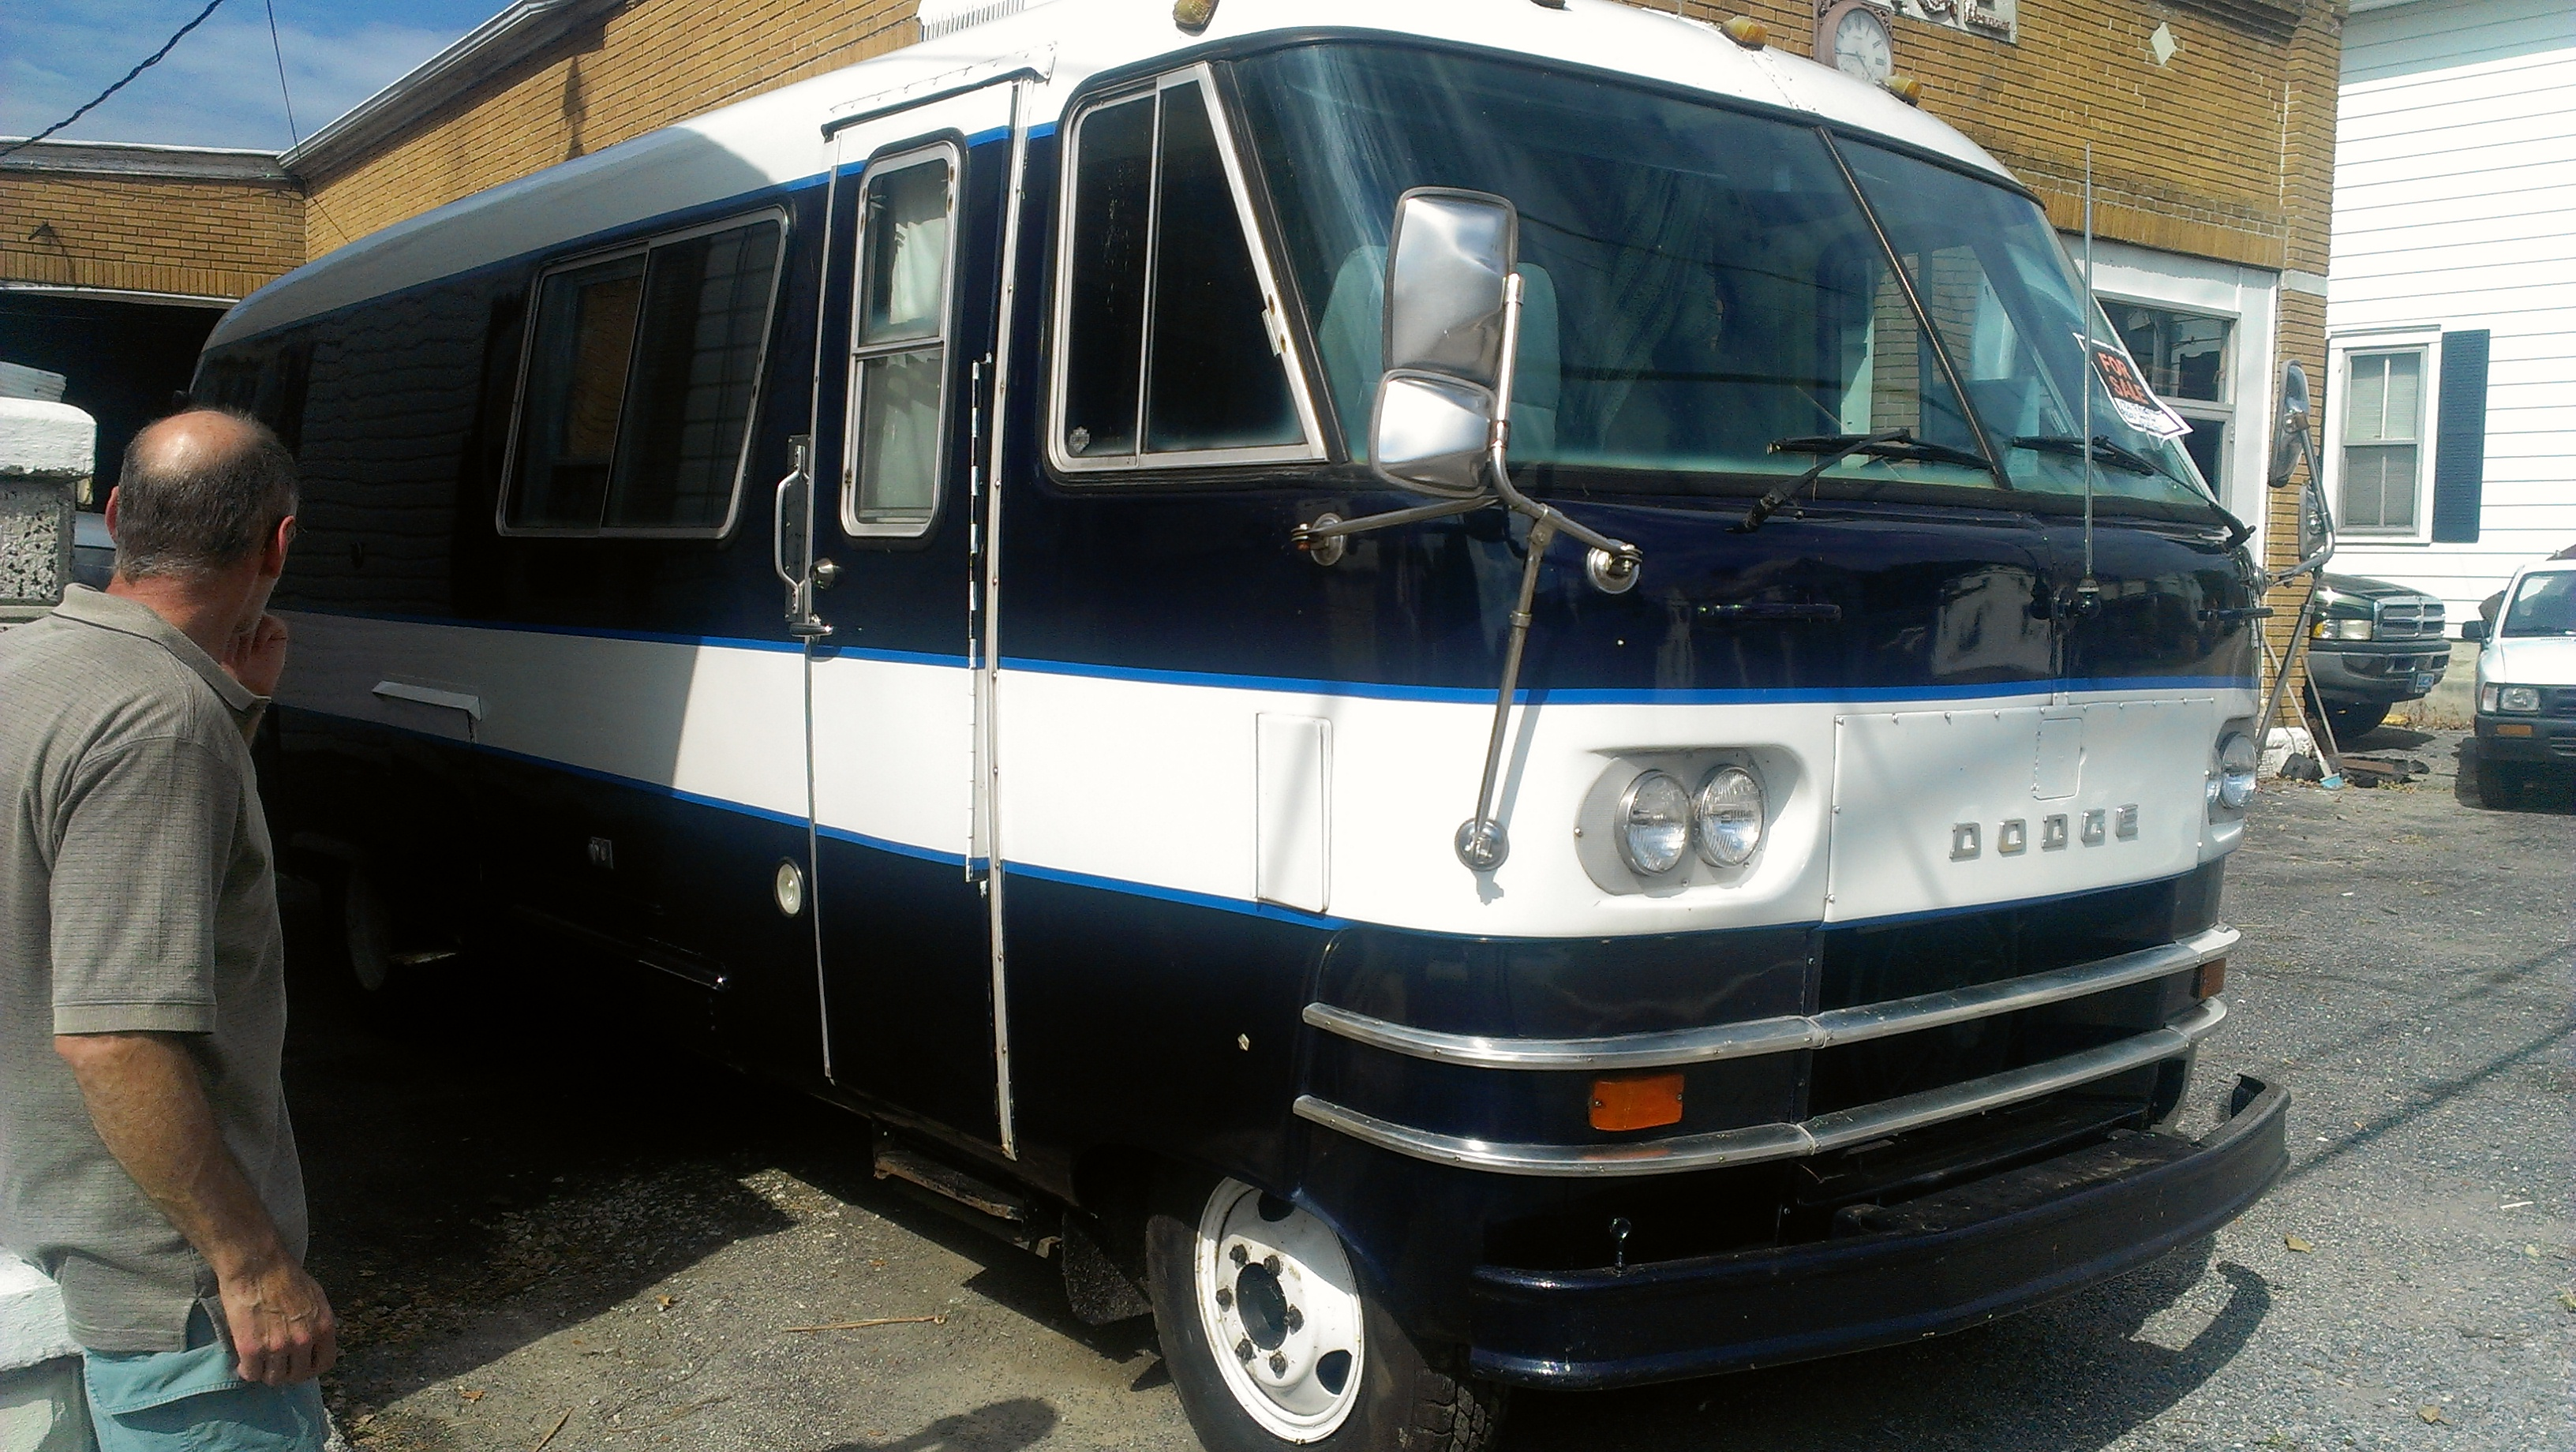 CC Capsule: Two Old Dodge Motorhomes – A Study In Contrasts